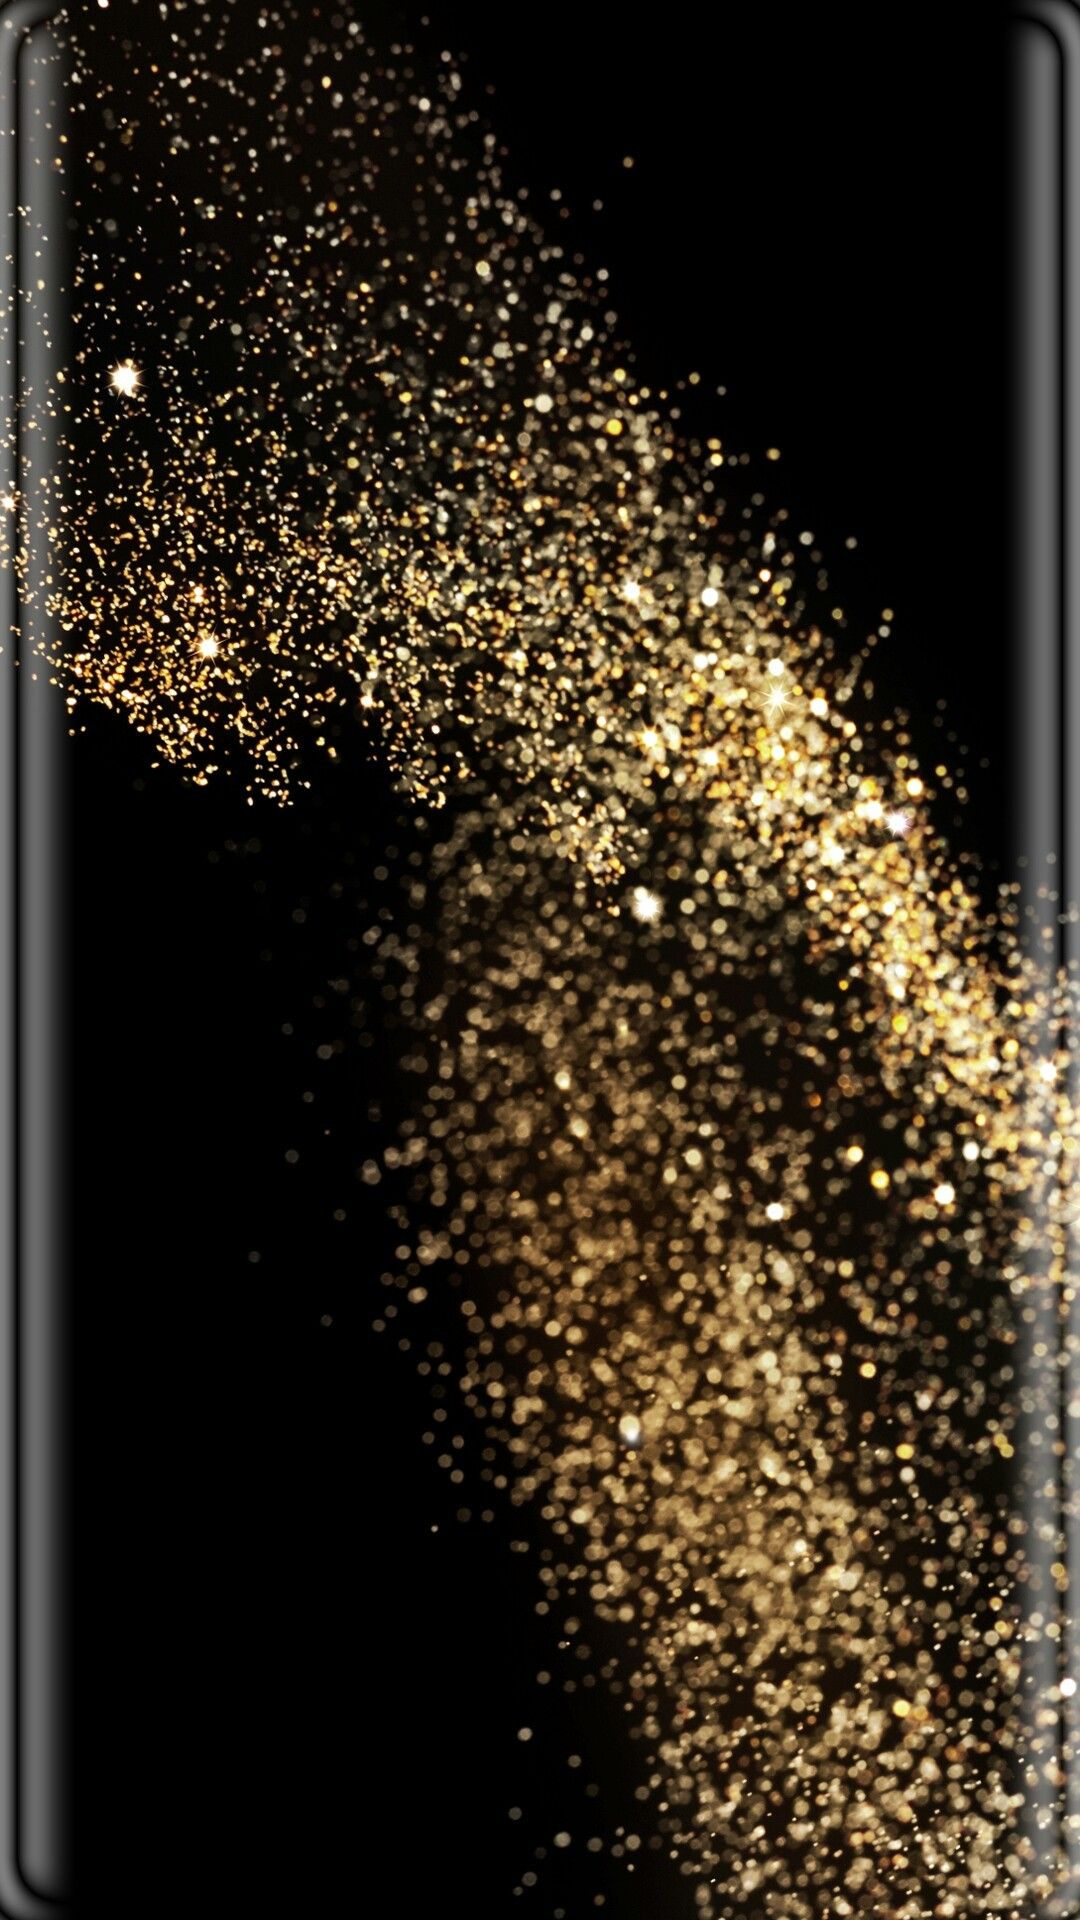 Black and Gold iPhone Wallpapers - Top Free Black and Gold ...